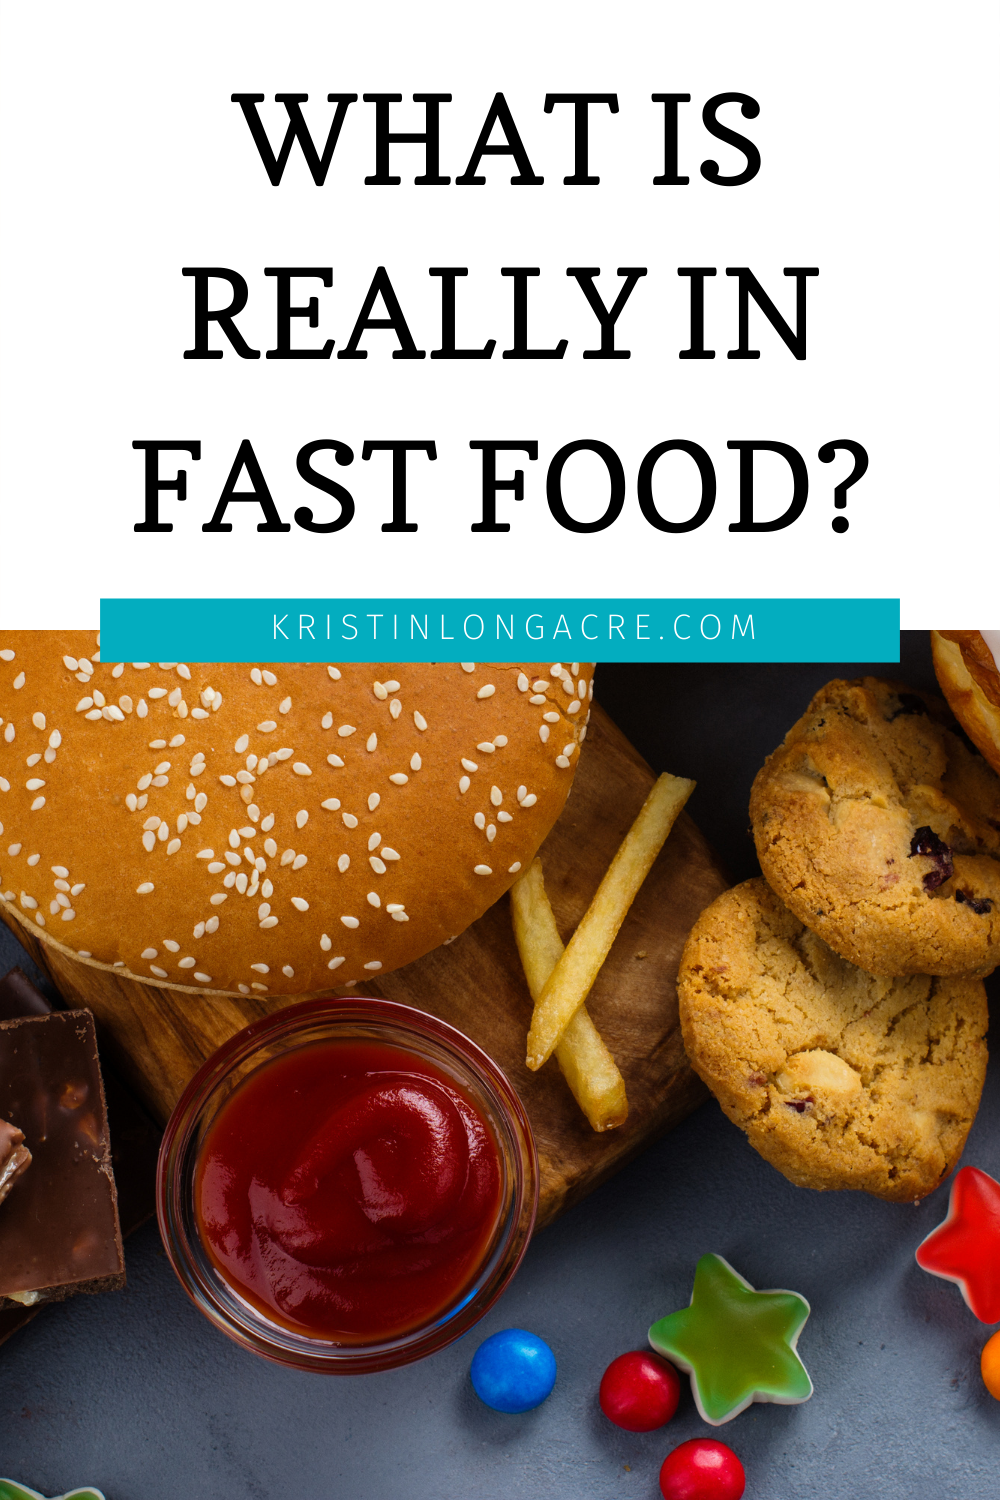 What is really in fast food